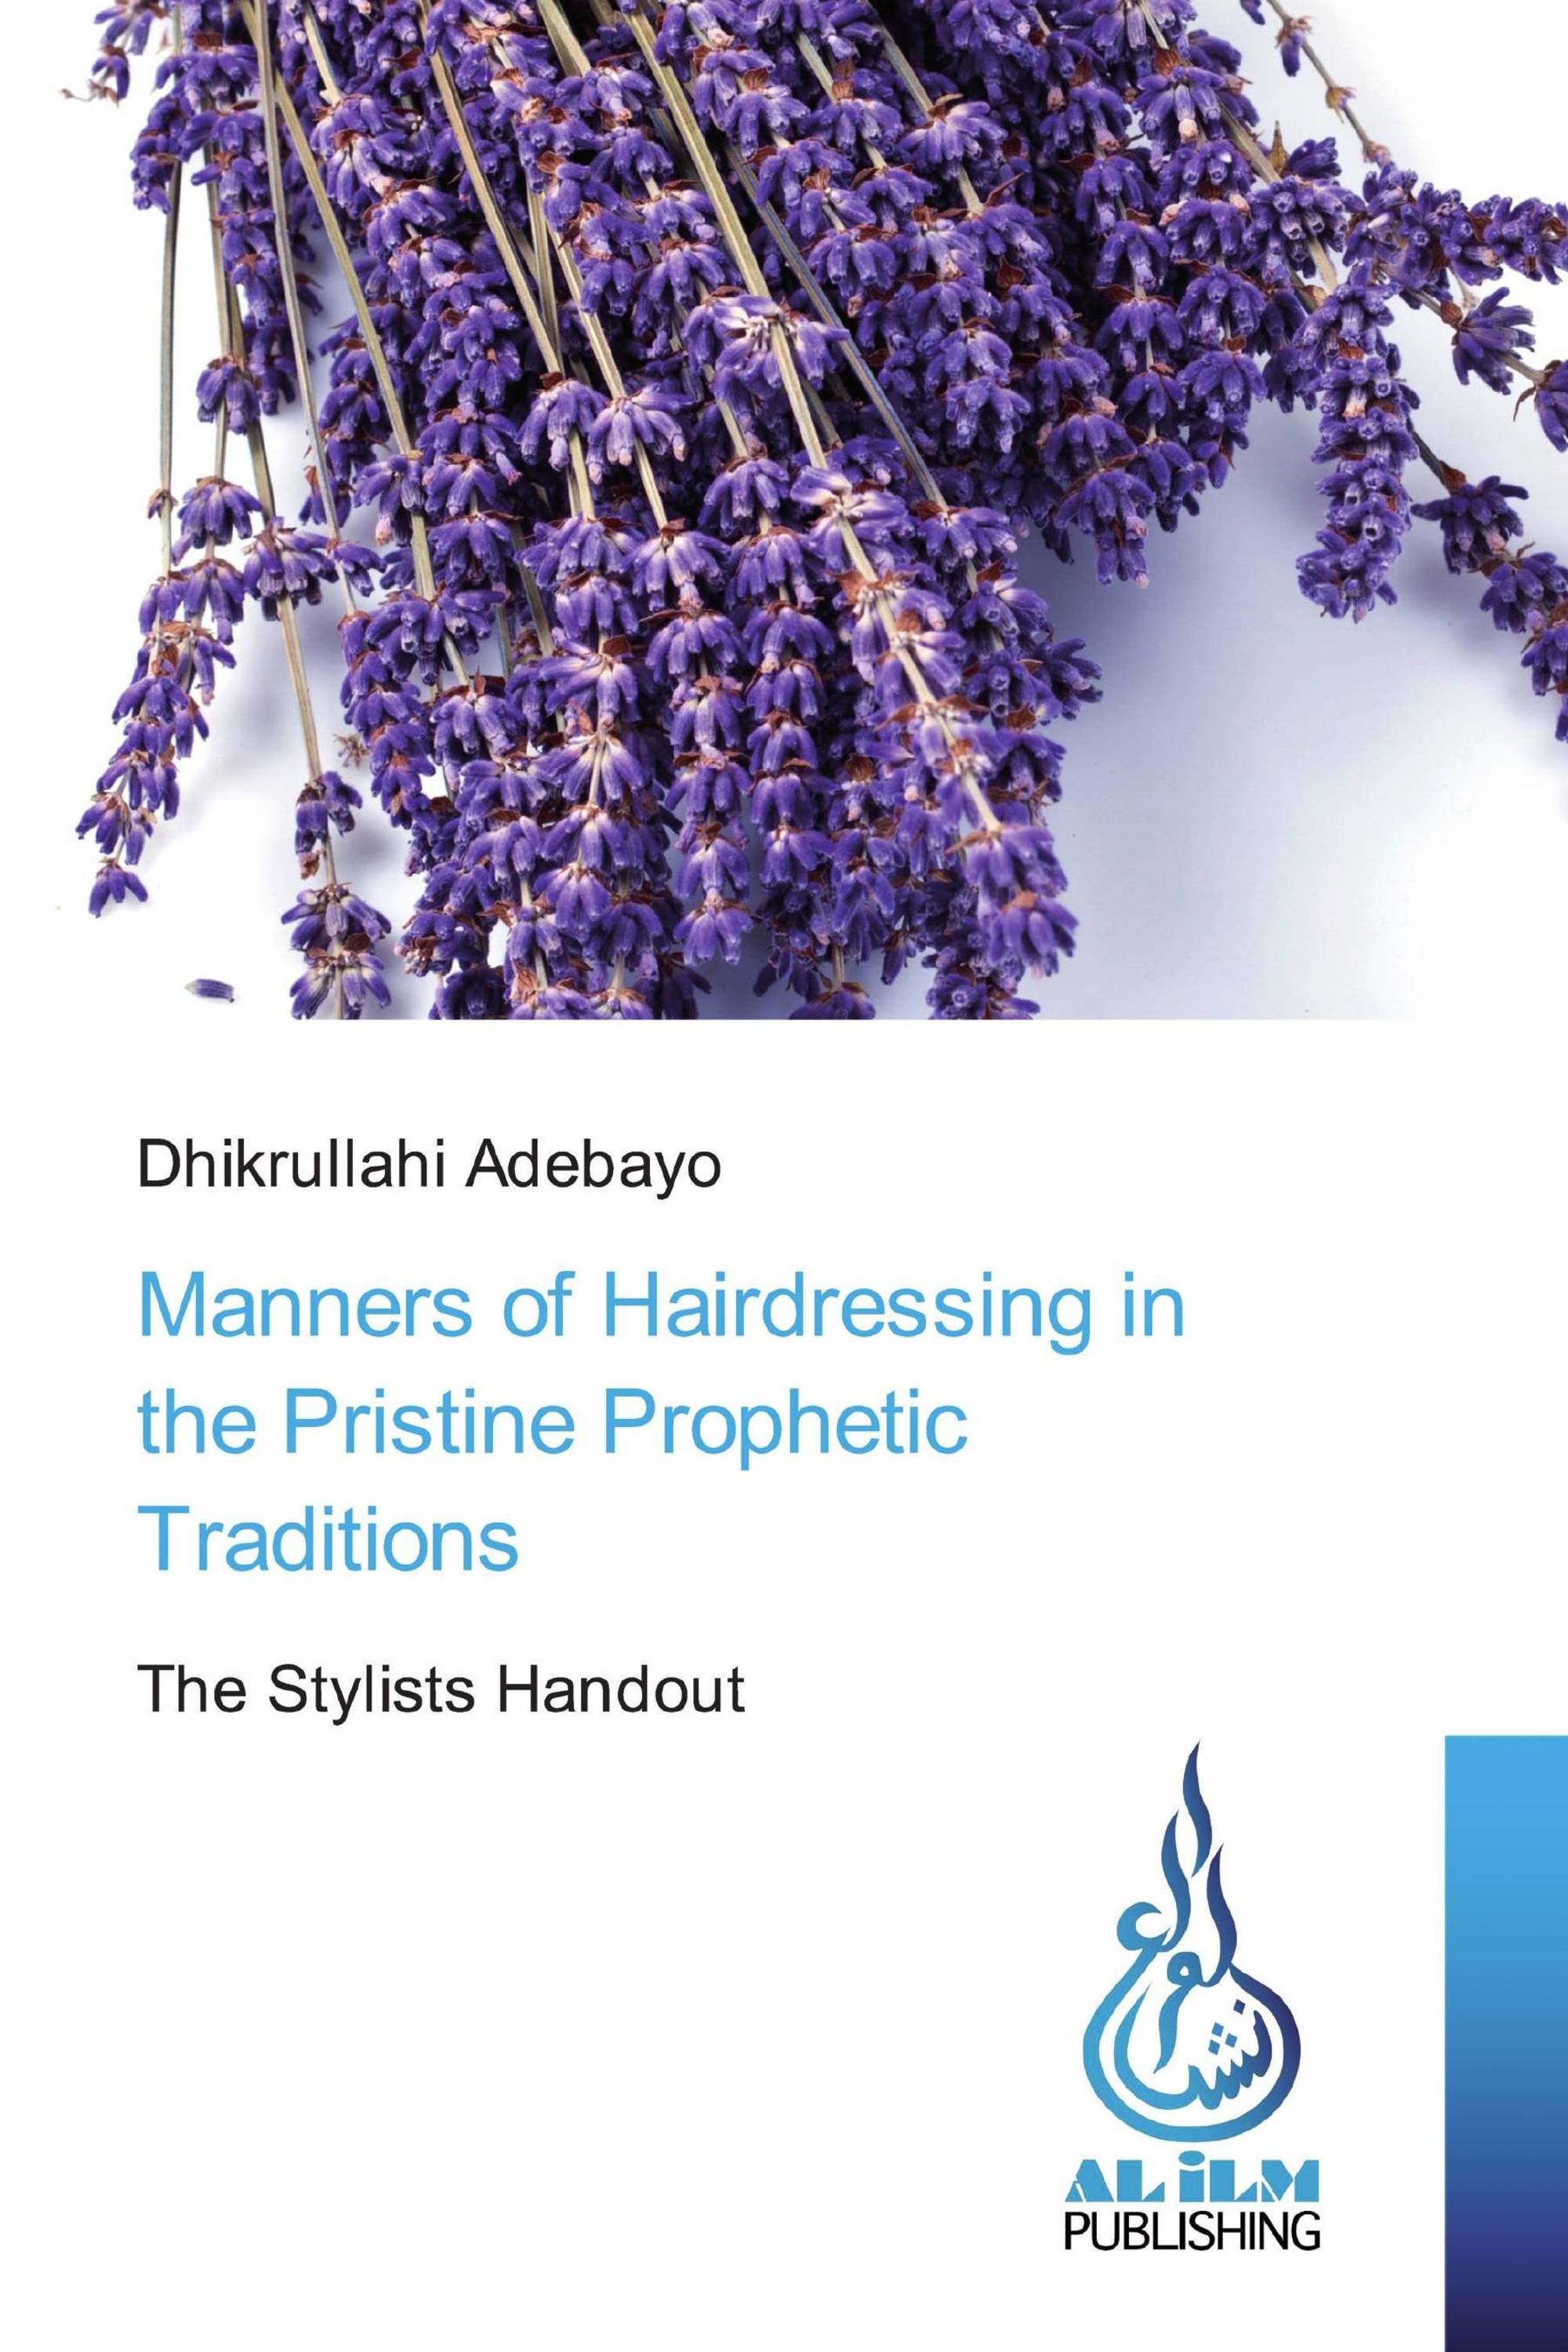 Manners of Hairdressing in the Pristine Prophetic Traditions